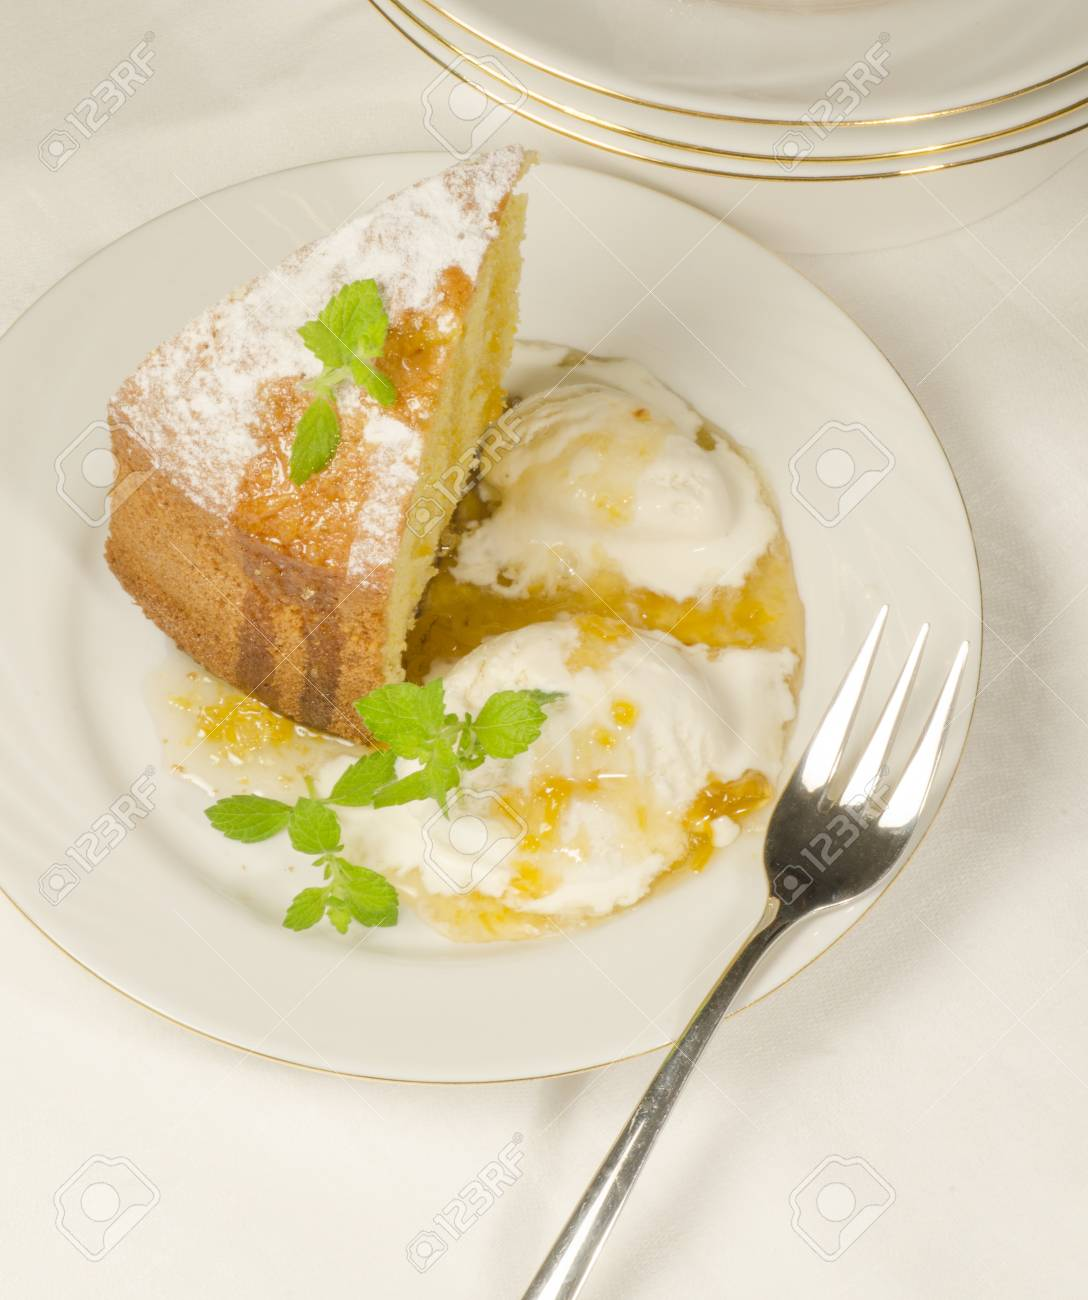 Maismehl Kuchen Backen Stock Photo